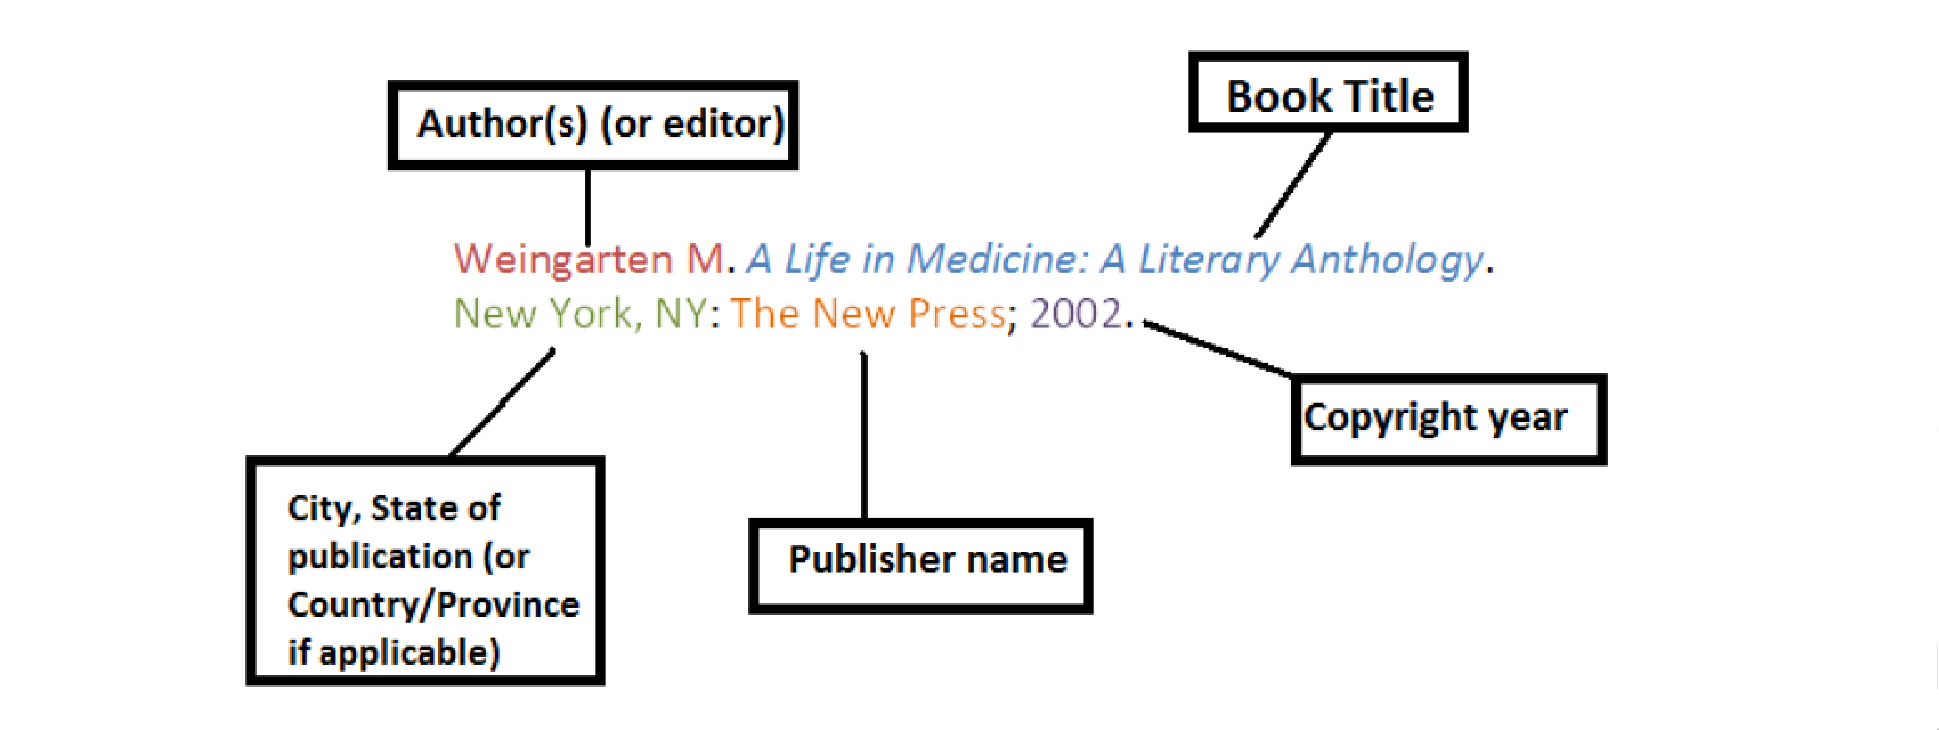 Guide to Citation: AMA Format - A Research Guide for Students